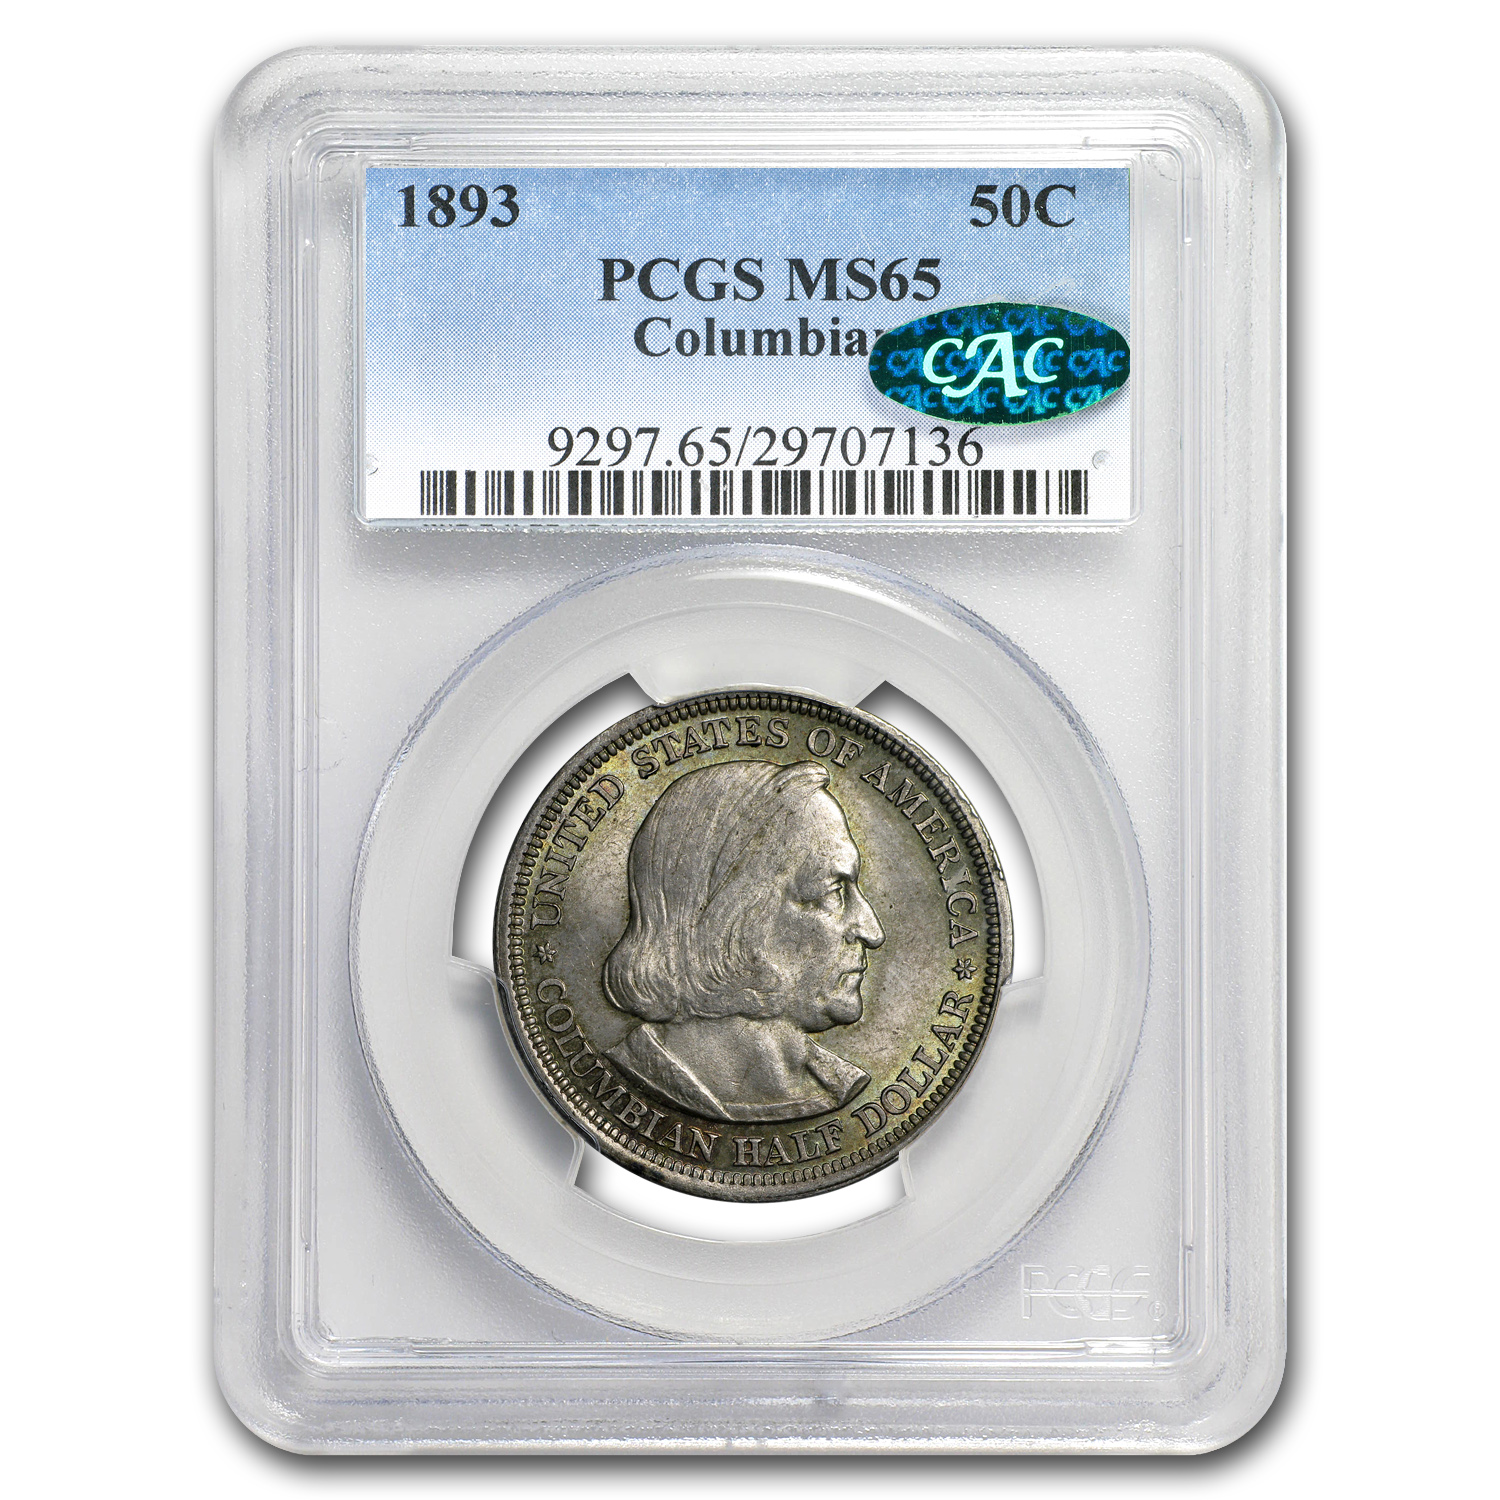 1893 Columbian Expo Half Dollar MS-65 PCGS CAC